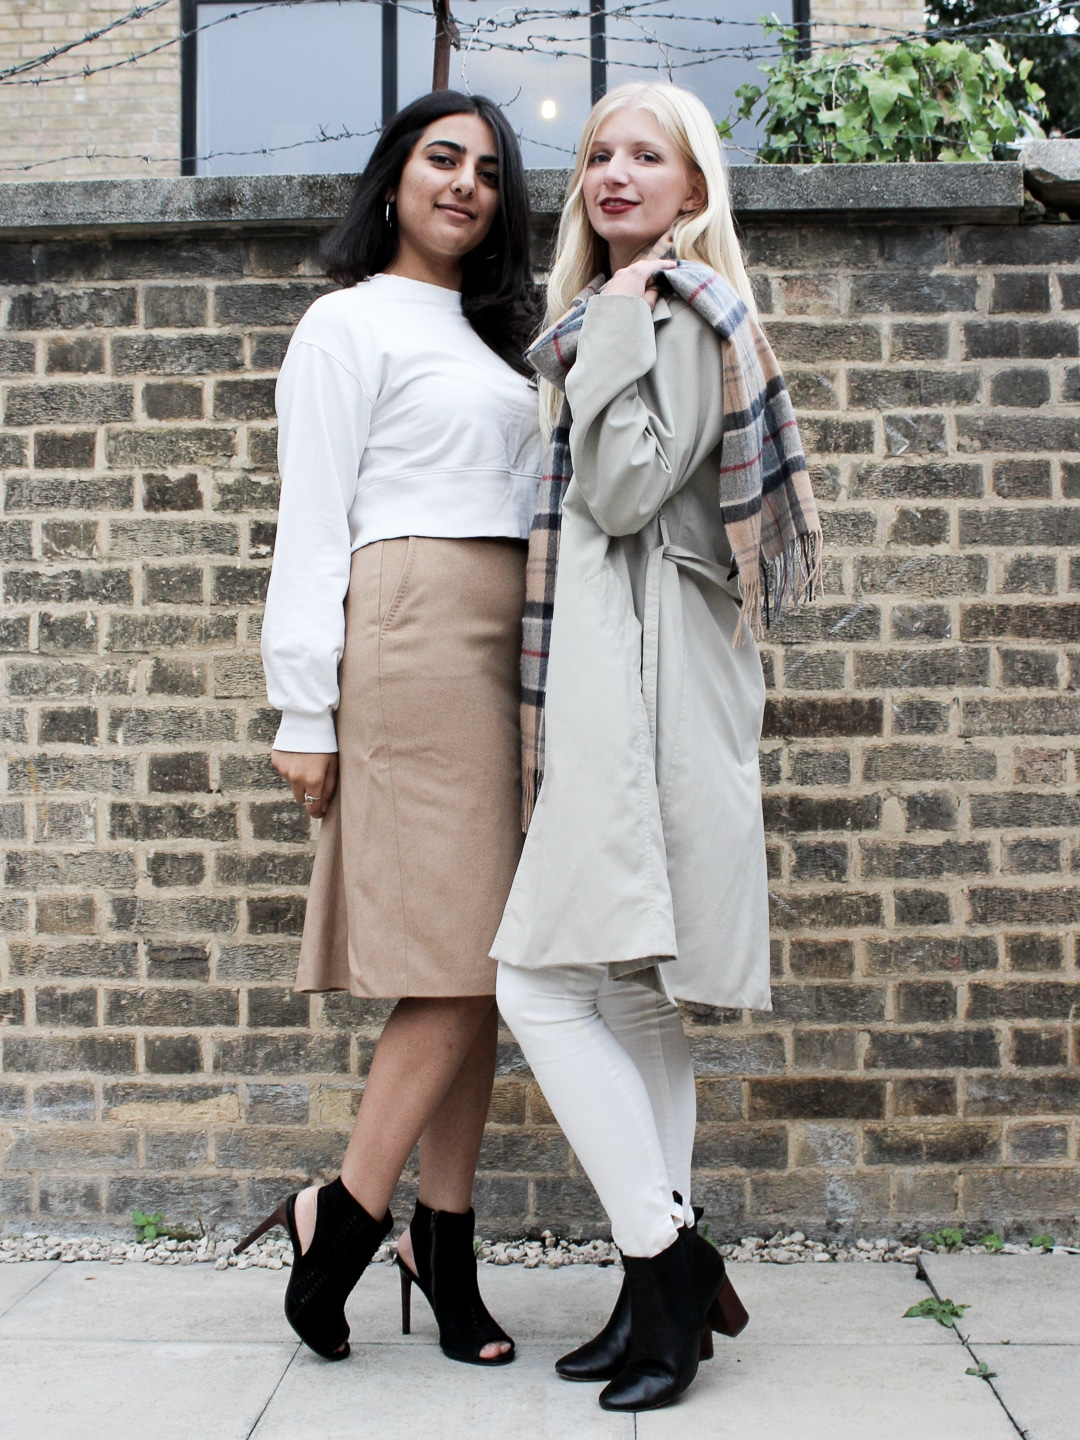 Meghan and Ella modelling clothes swap items